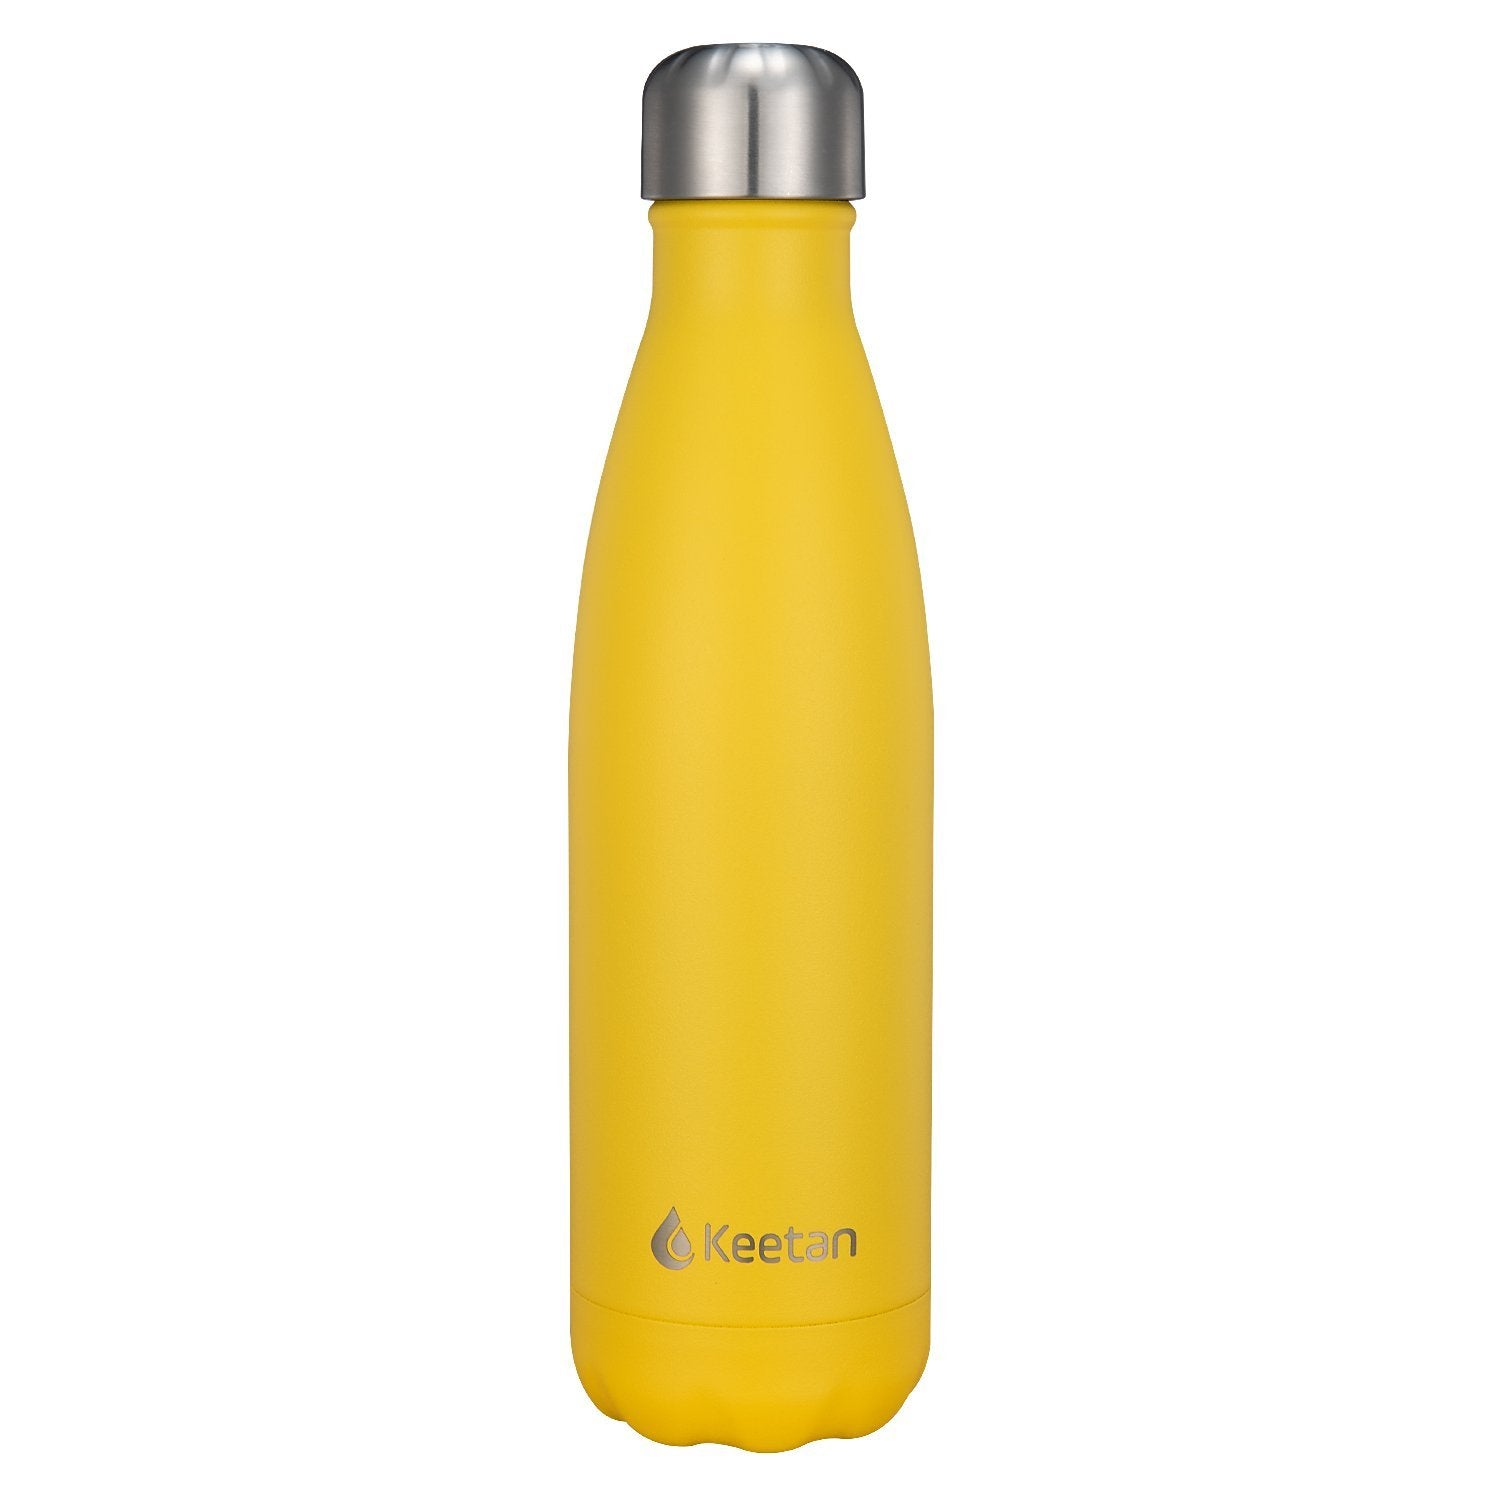 Keetan AIR Max Water Bottle-Yellow - Customized